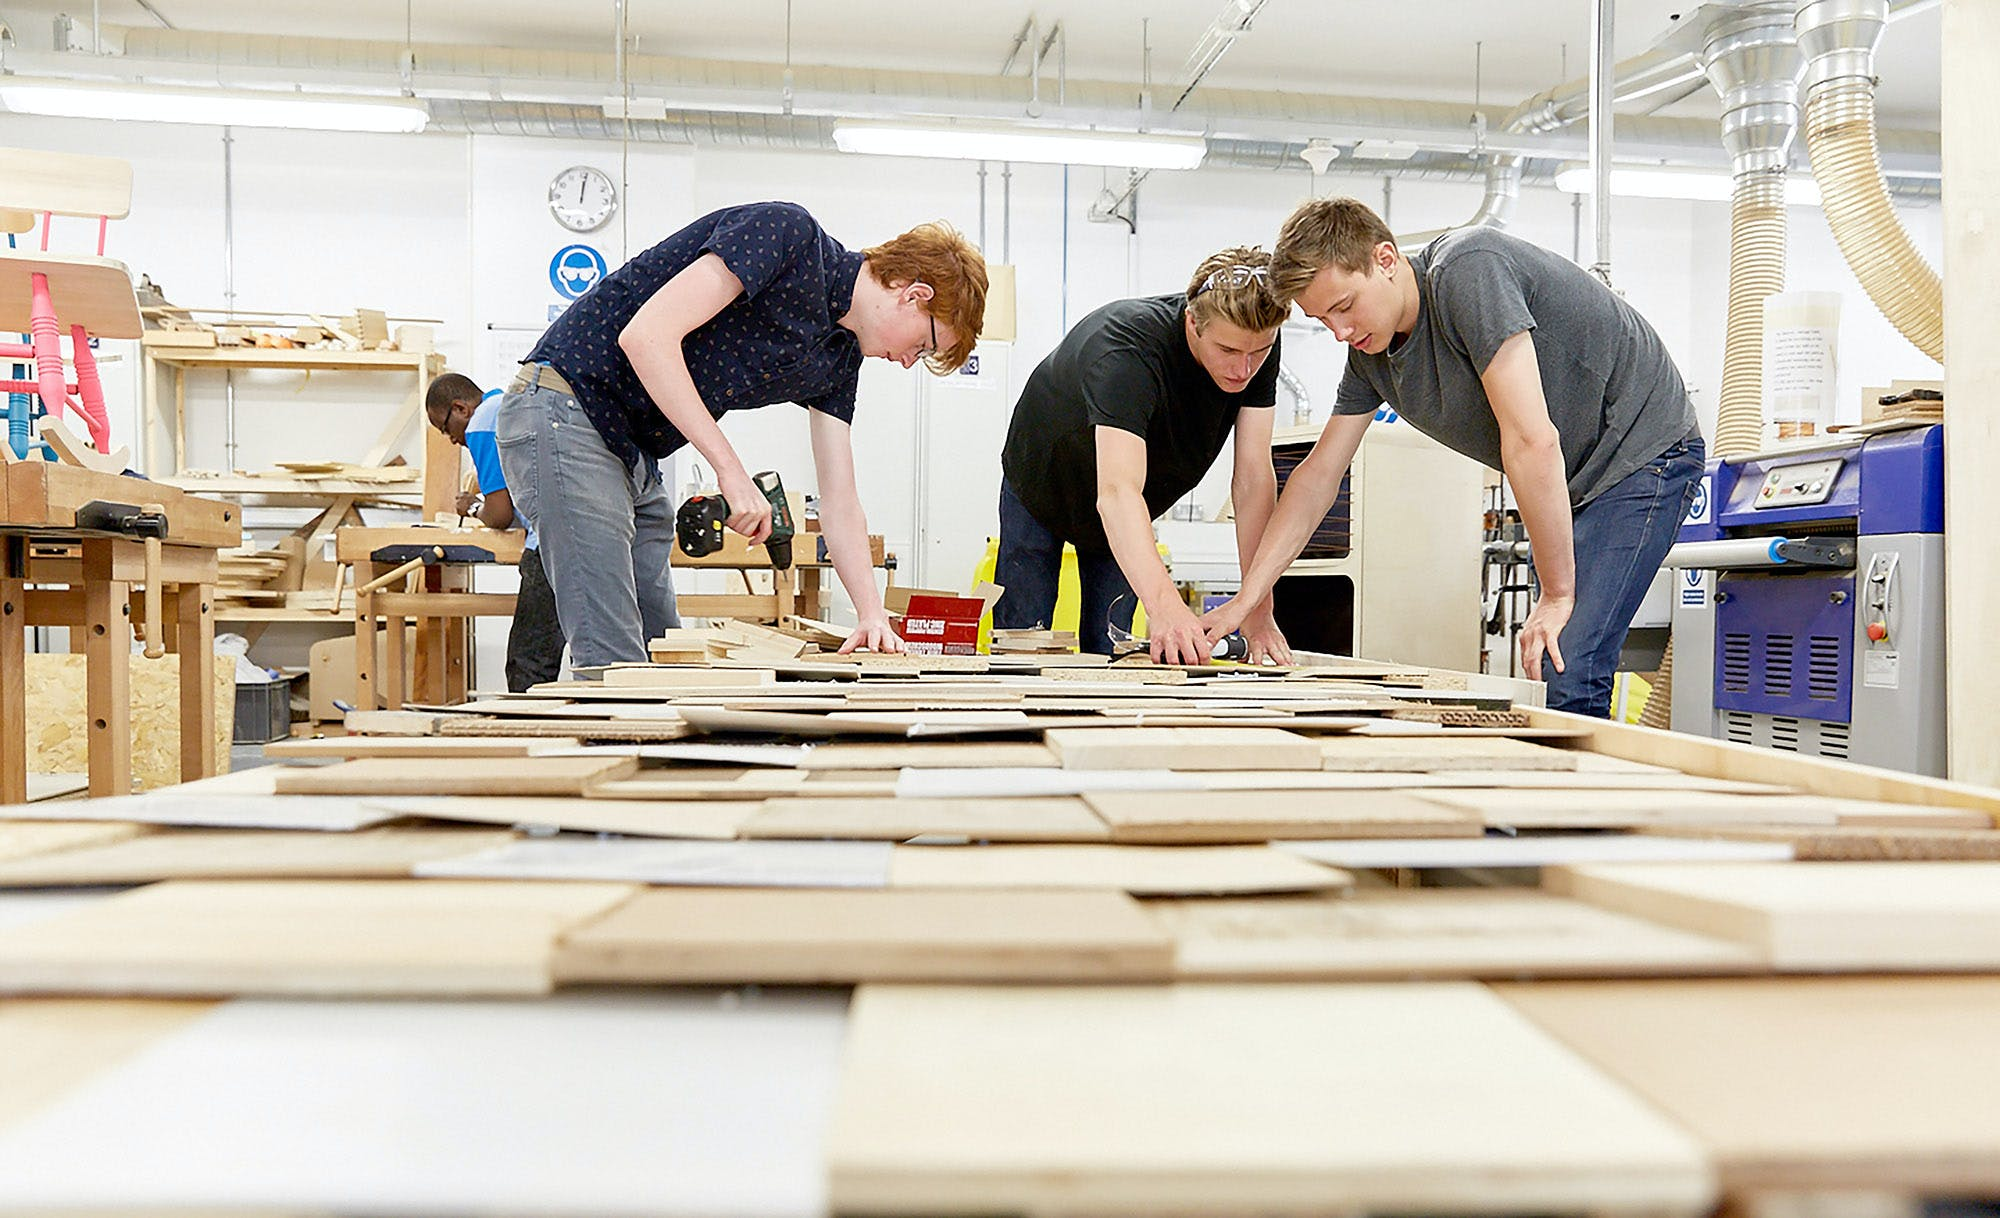 Furniture Design Courses In The Uk Are Becoming